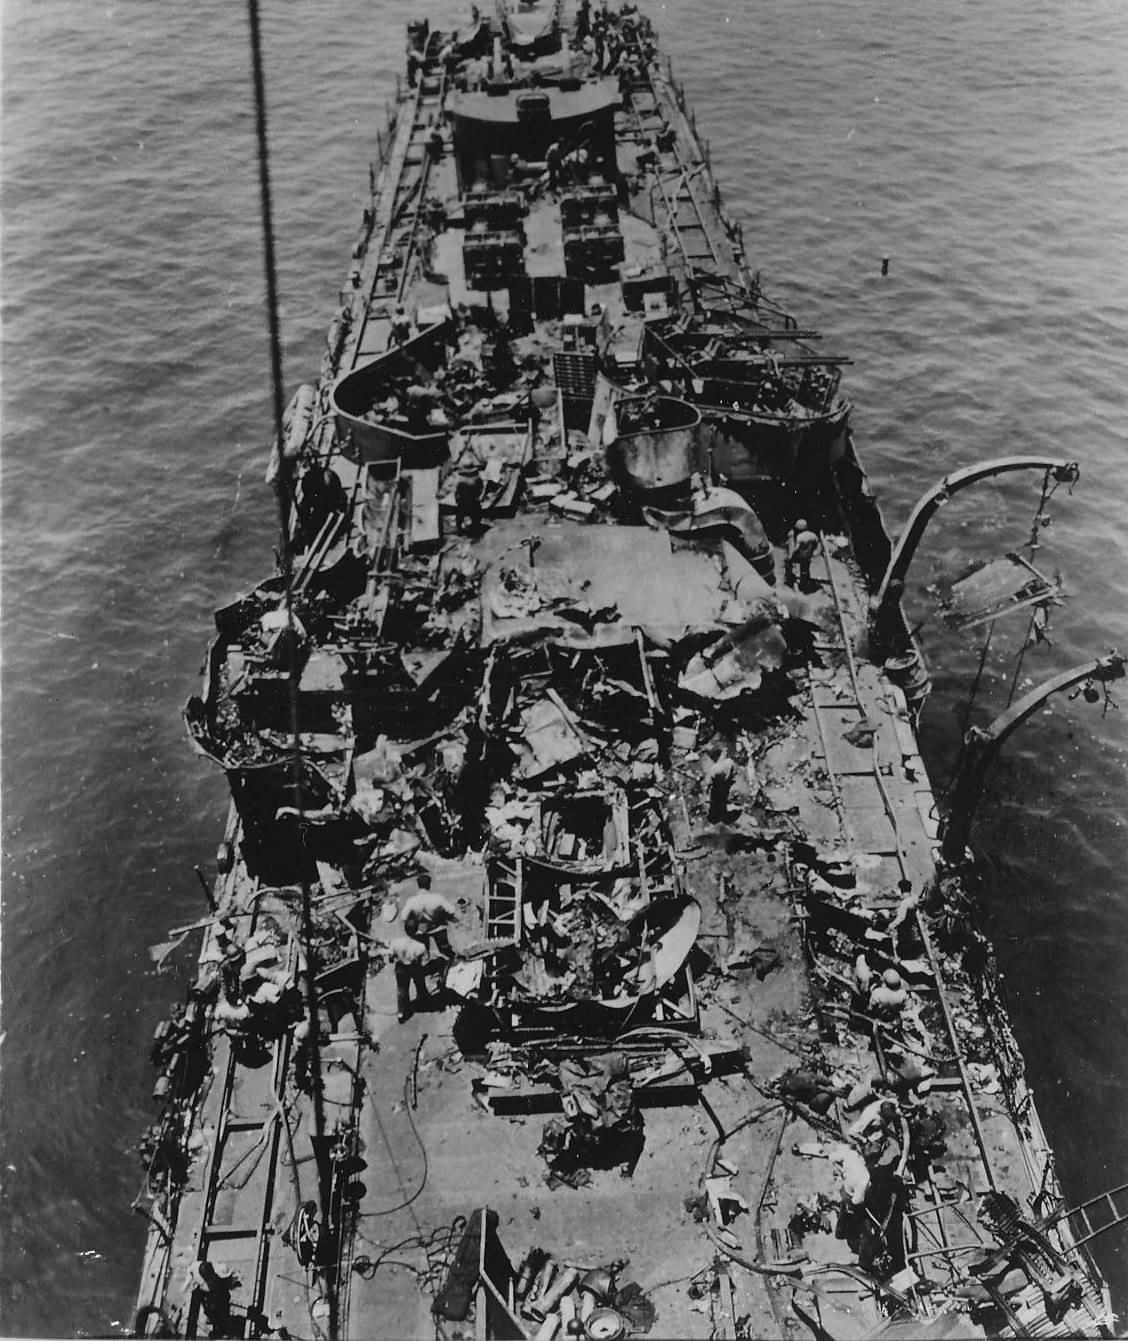 Mine layer USS Aaron Ward DM-34 hit by 6 suicide planes April 1945